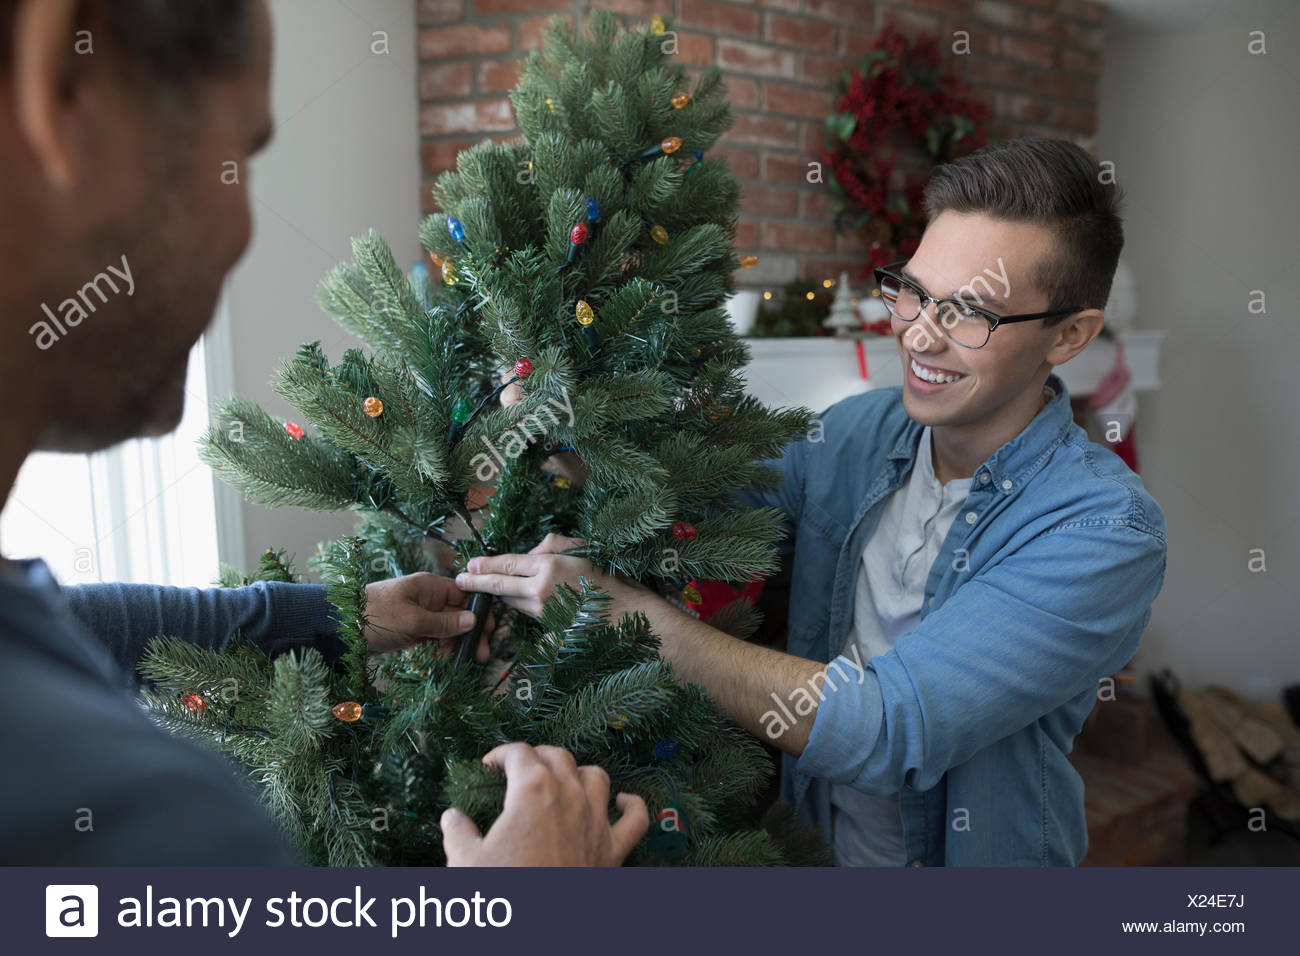 Father and son decorating, assembling artificial Christmas tree in living room - Stock Image